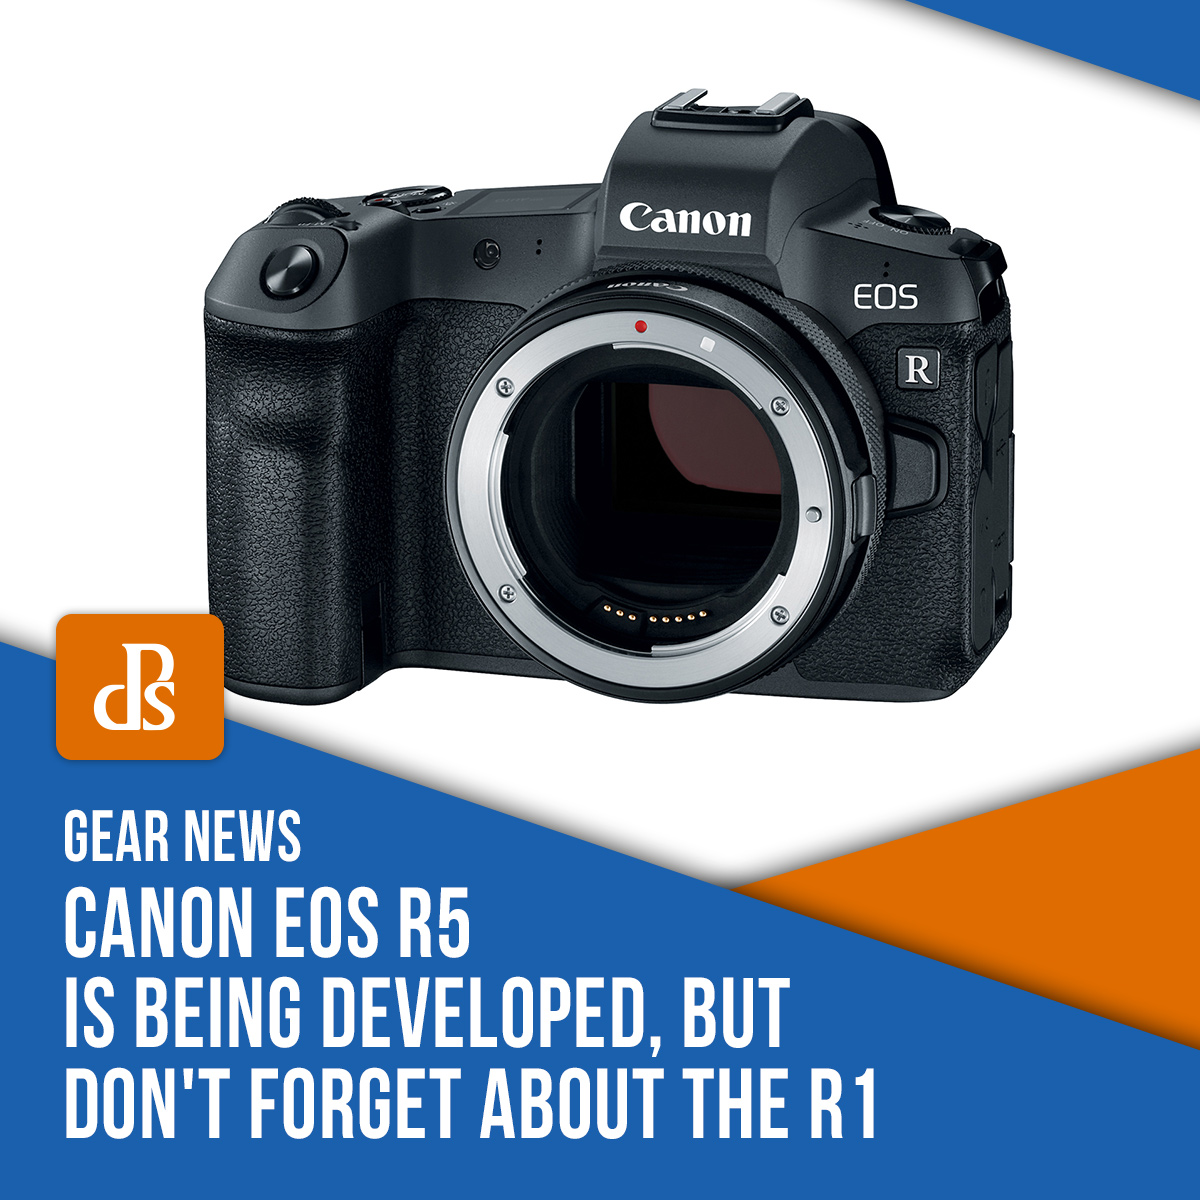 news-canon-eos-r5-development